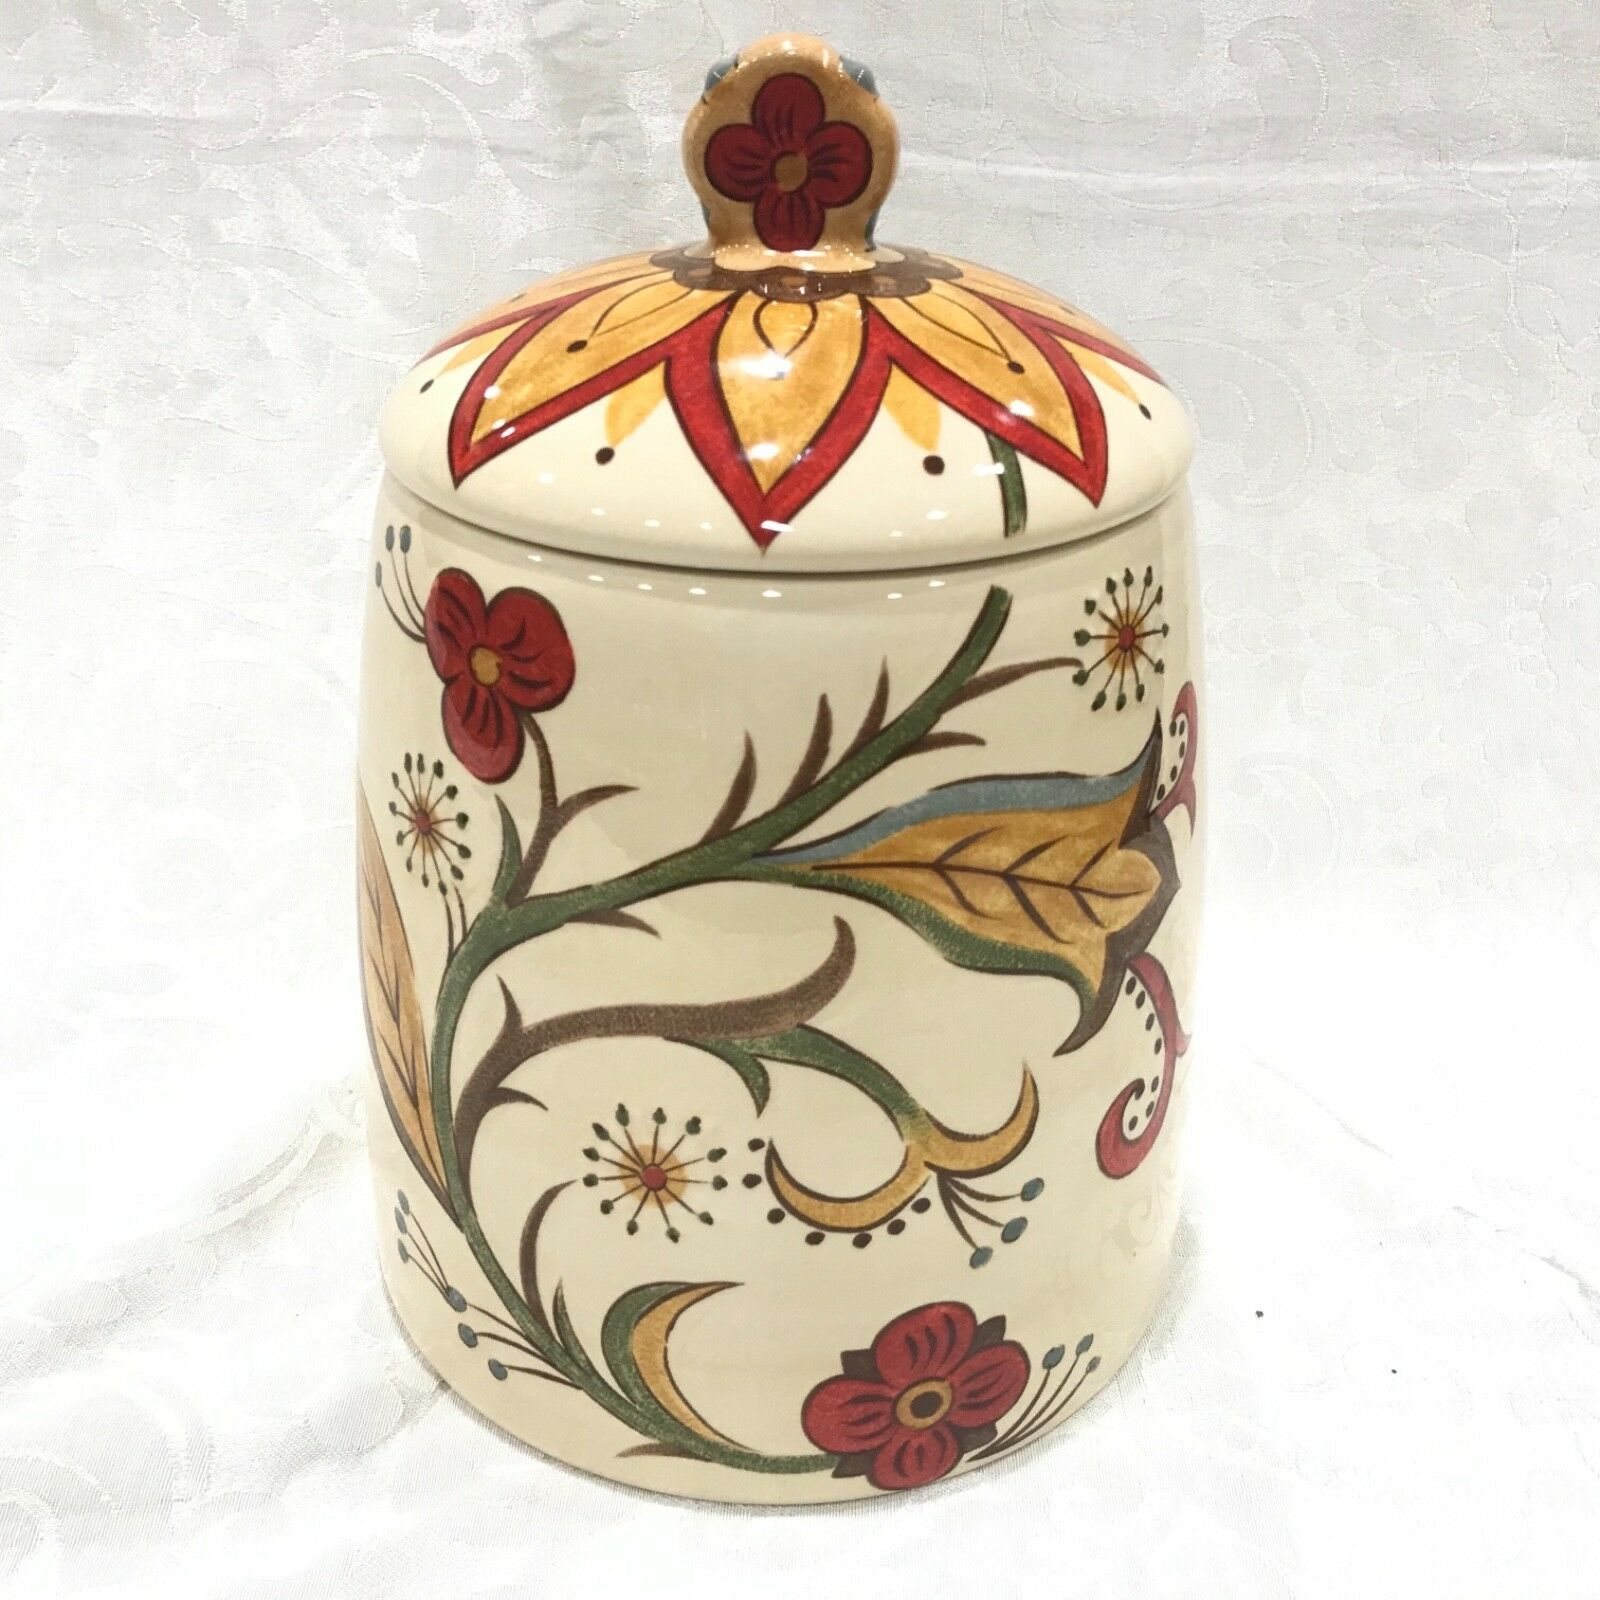 "Pier 1 Carnythum CANISTER COOKIE JAR WITH LID 11"" TALL X 7"" WIDE AT BASE"